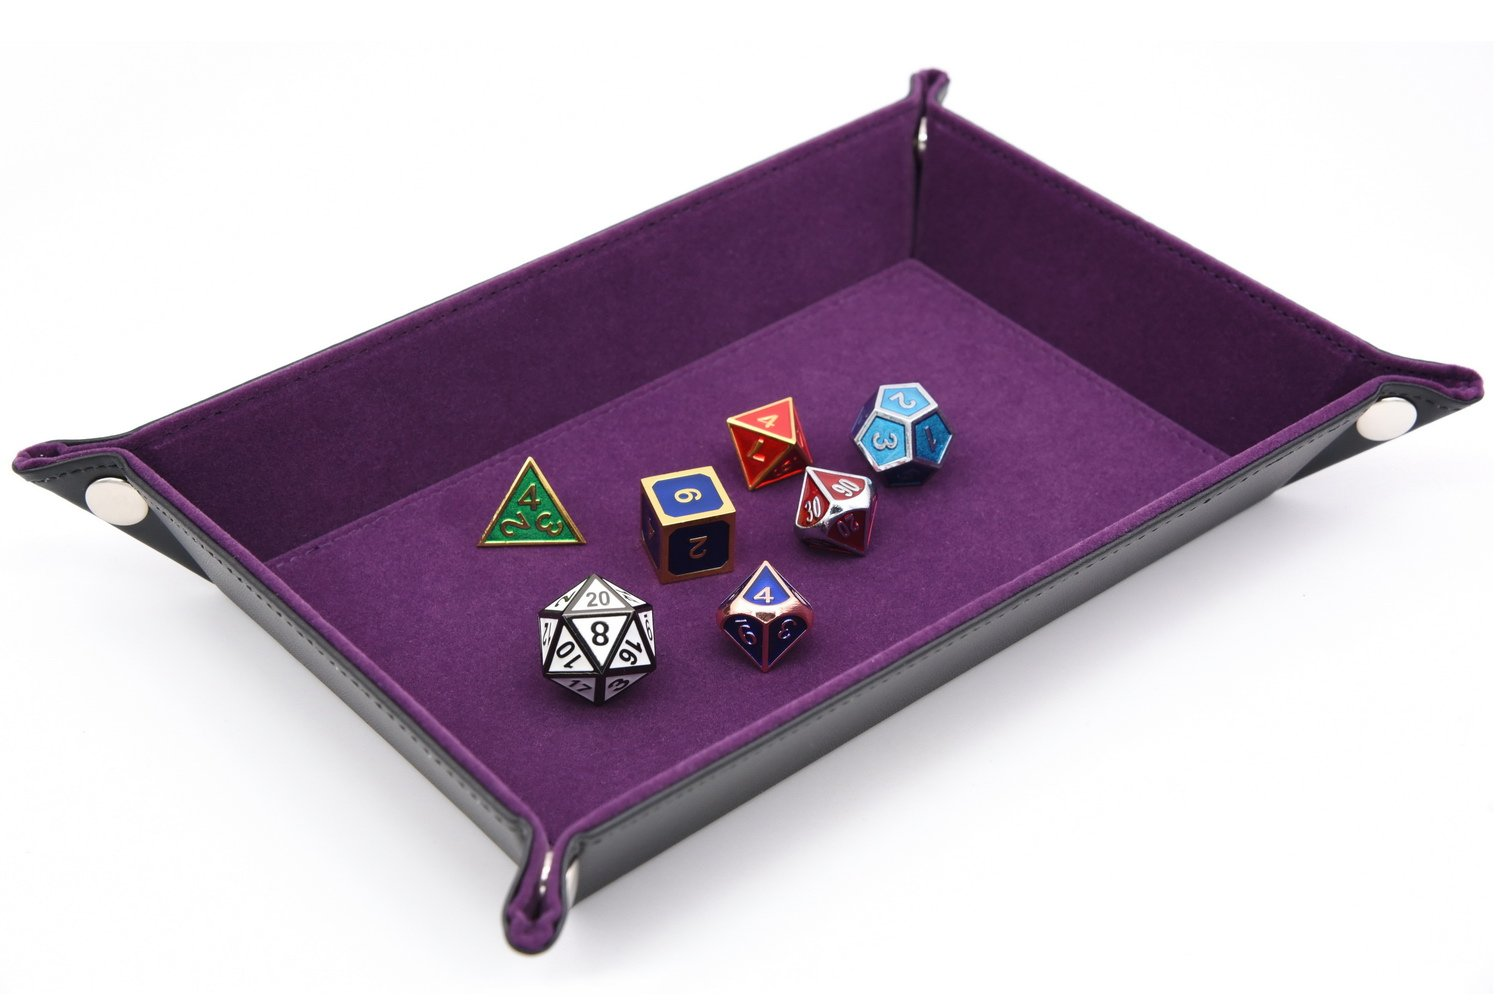 Dice Holder PU Leather Folding Rectangle Tray w/purple Velvet for RPG, DnD and Other Table Games